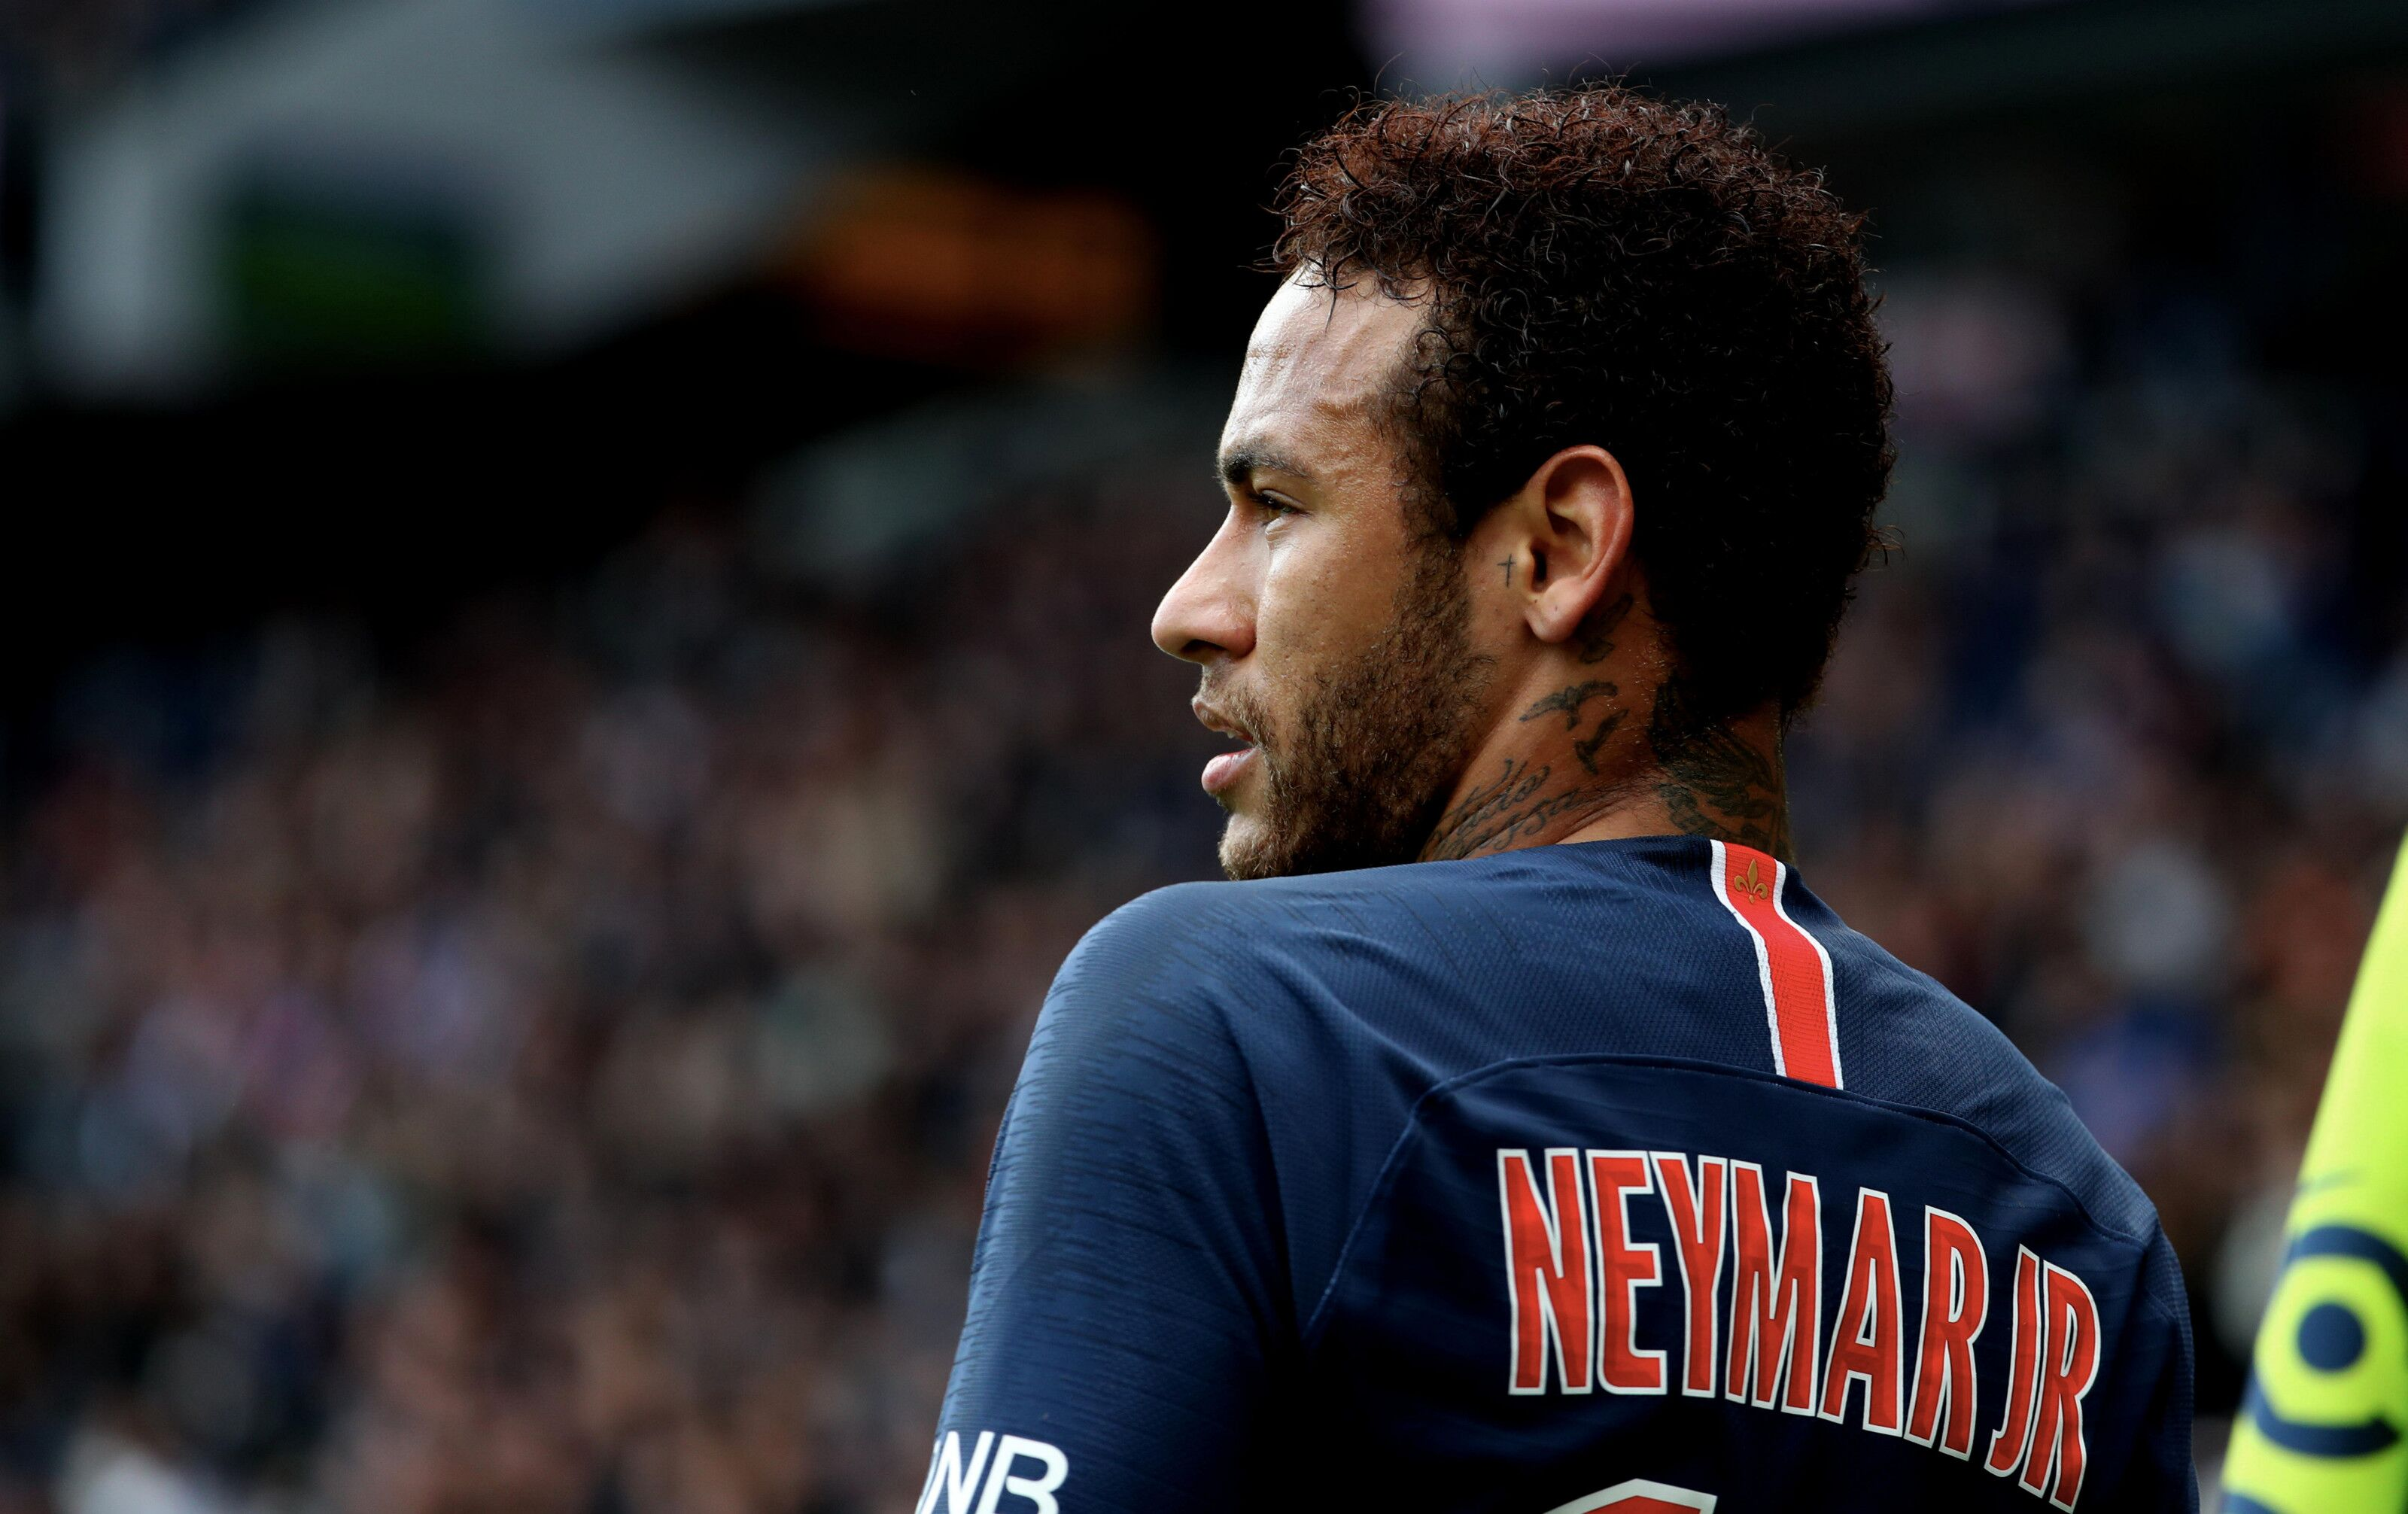 Neymar loan deal could be genius move for Barcelona